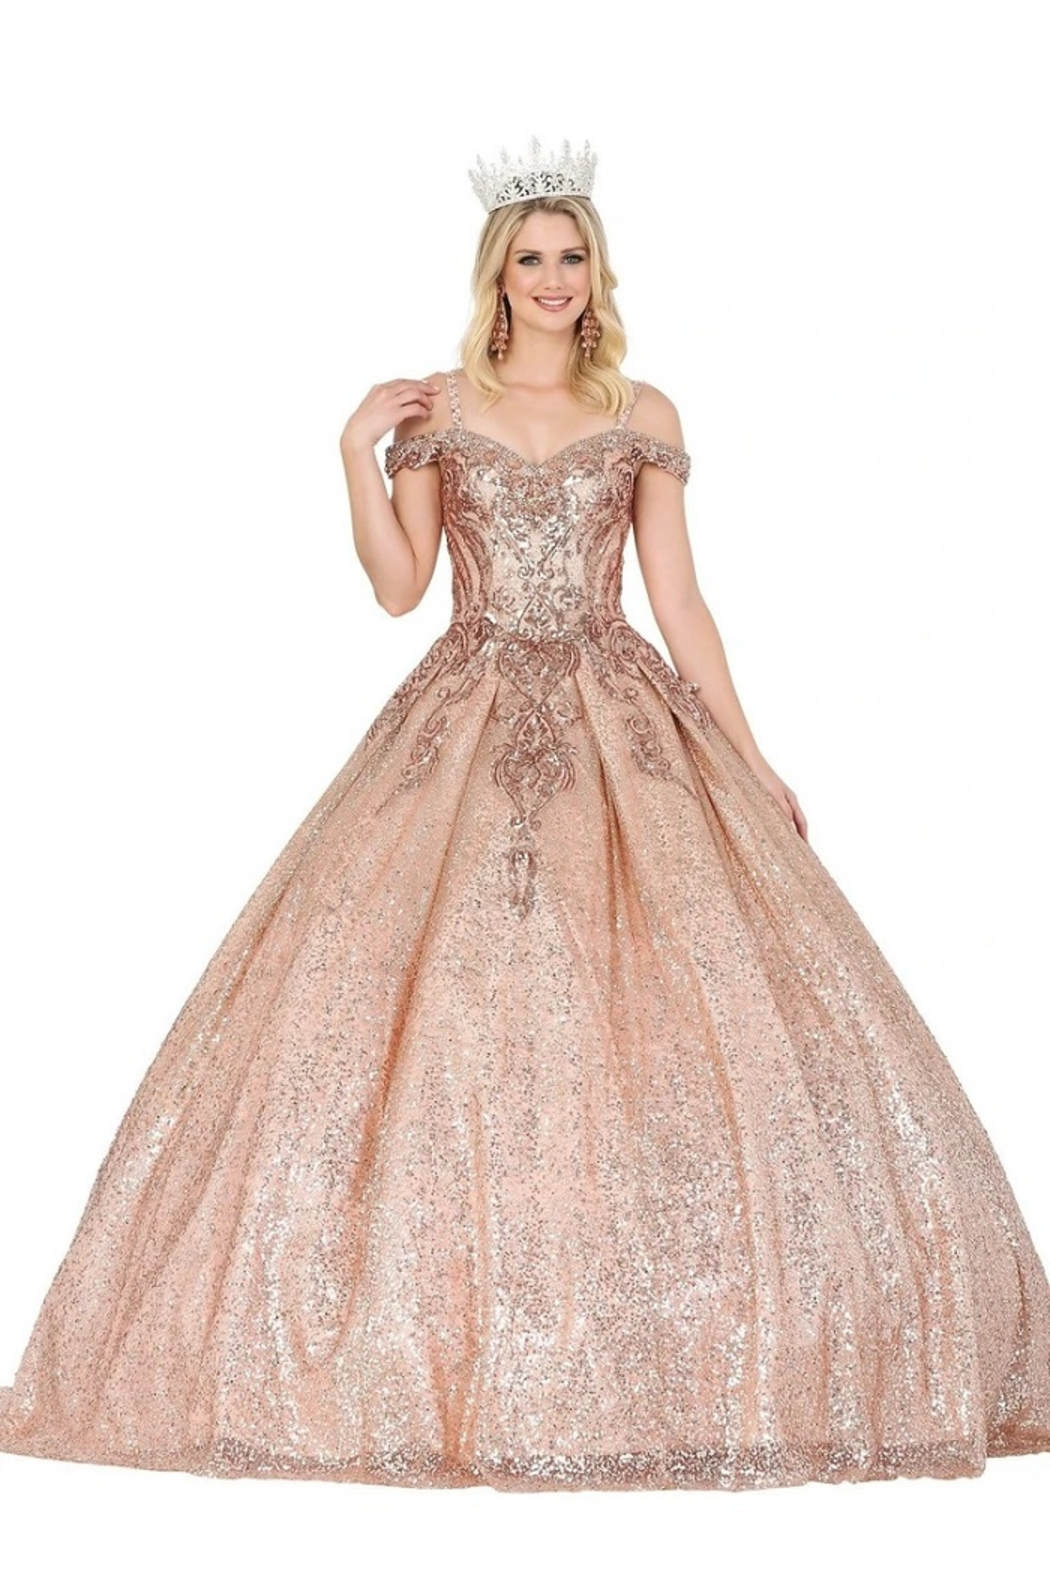 DANCING QUEEN Rose Gold Sequin Embellished Formal Ball Gown - Main Image